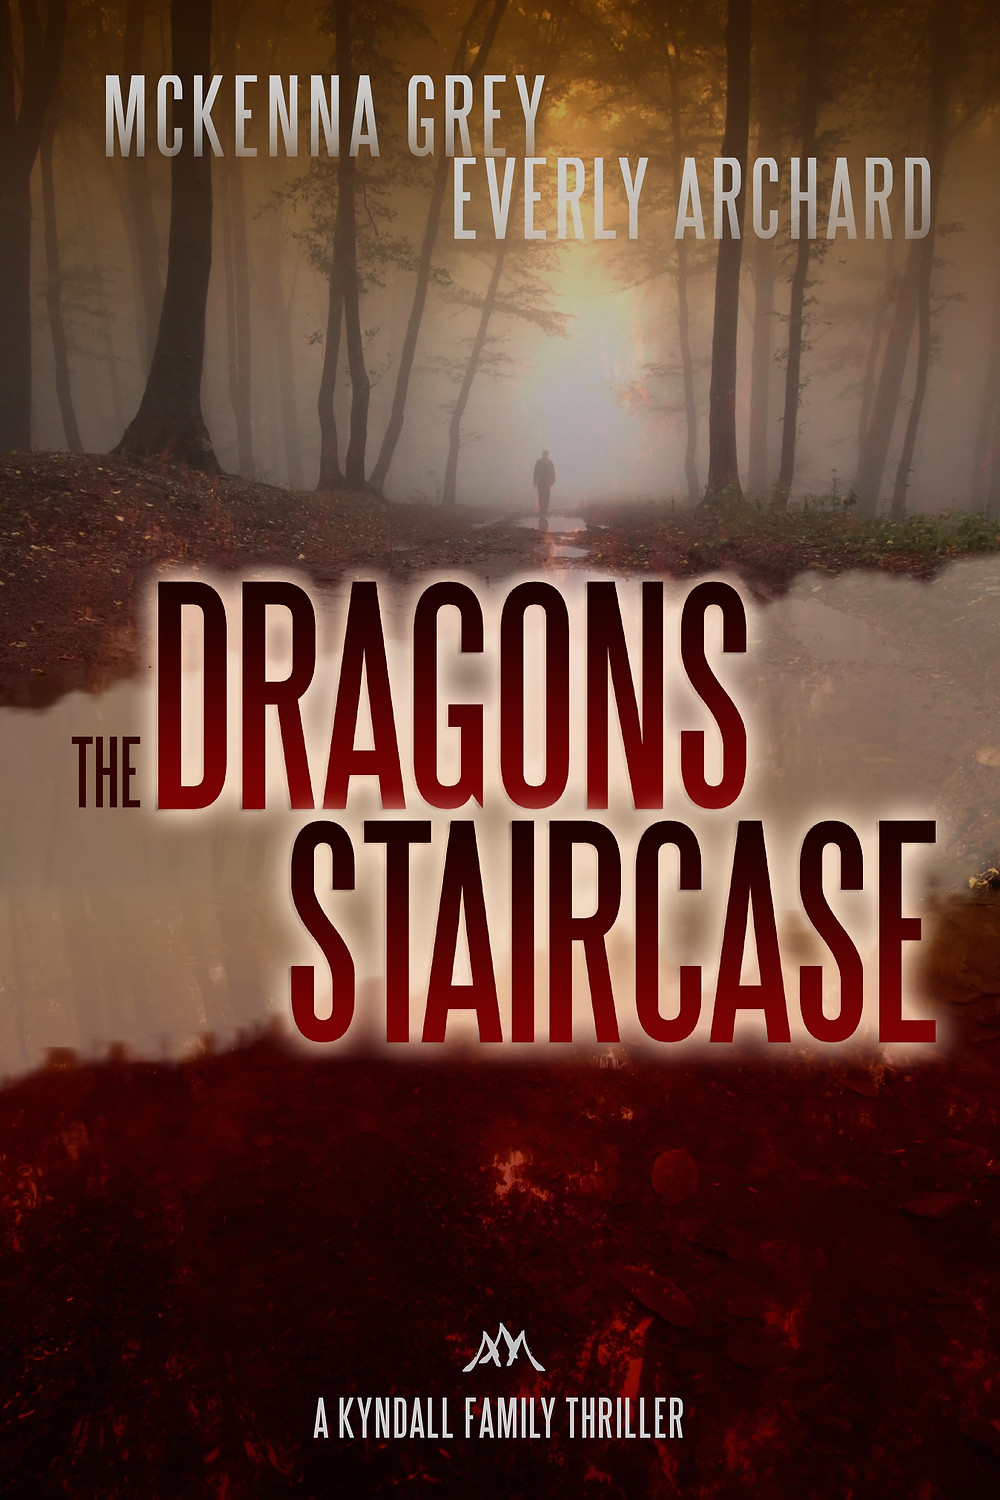 THE DRAGON'S STAIRCASE by McKenna Grey and Everly Archard